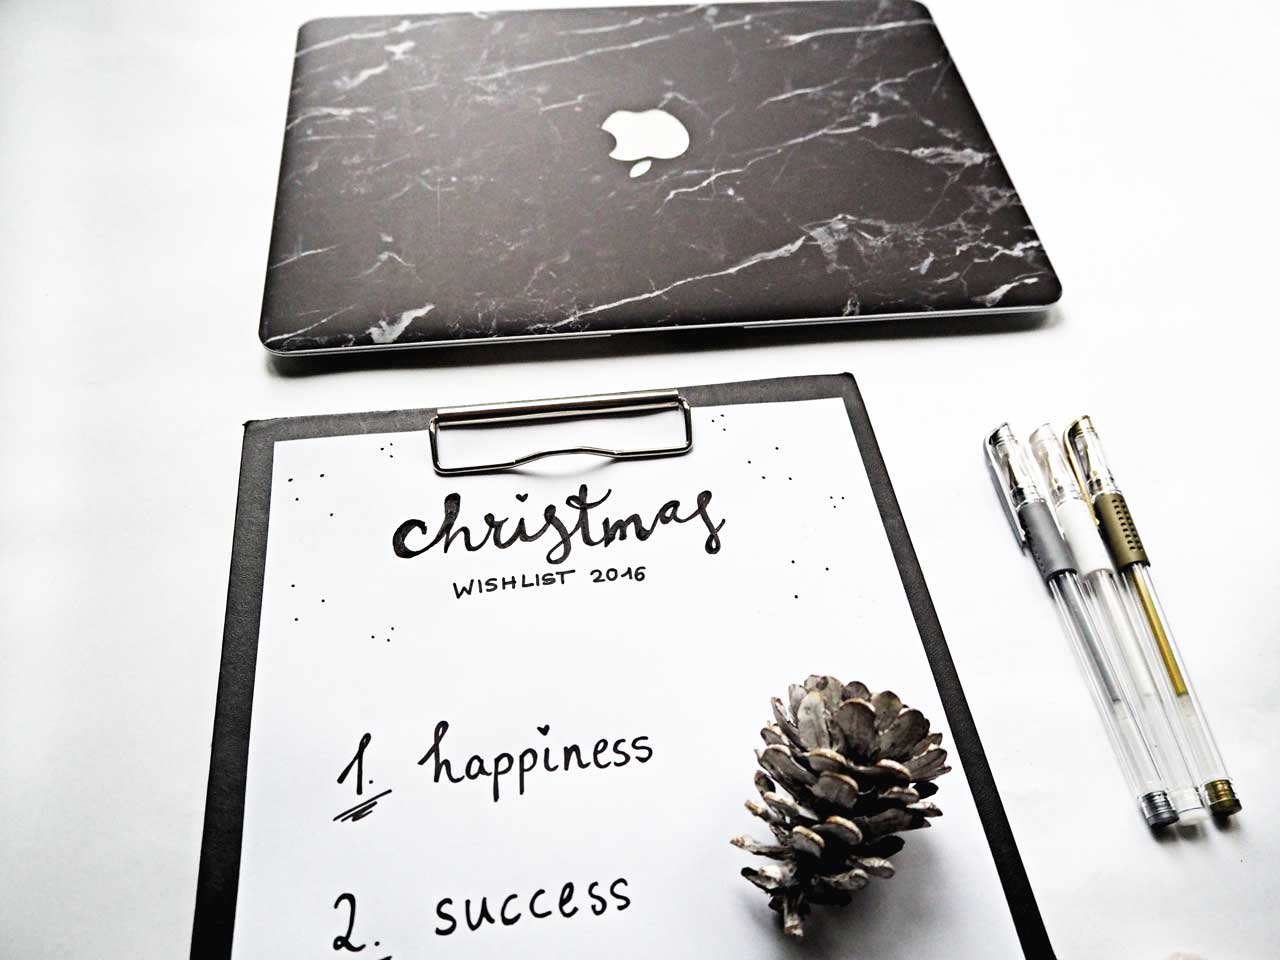 christmas wishlist_productivity_happiness_caseapp